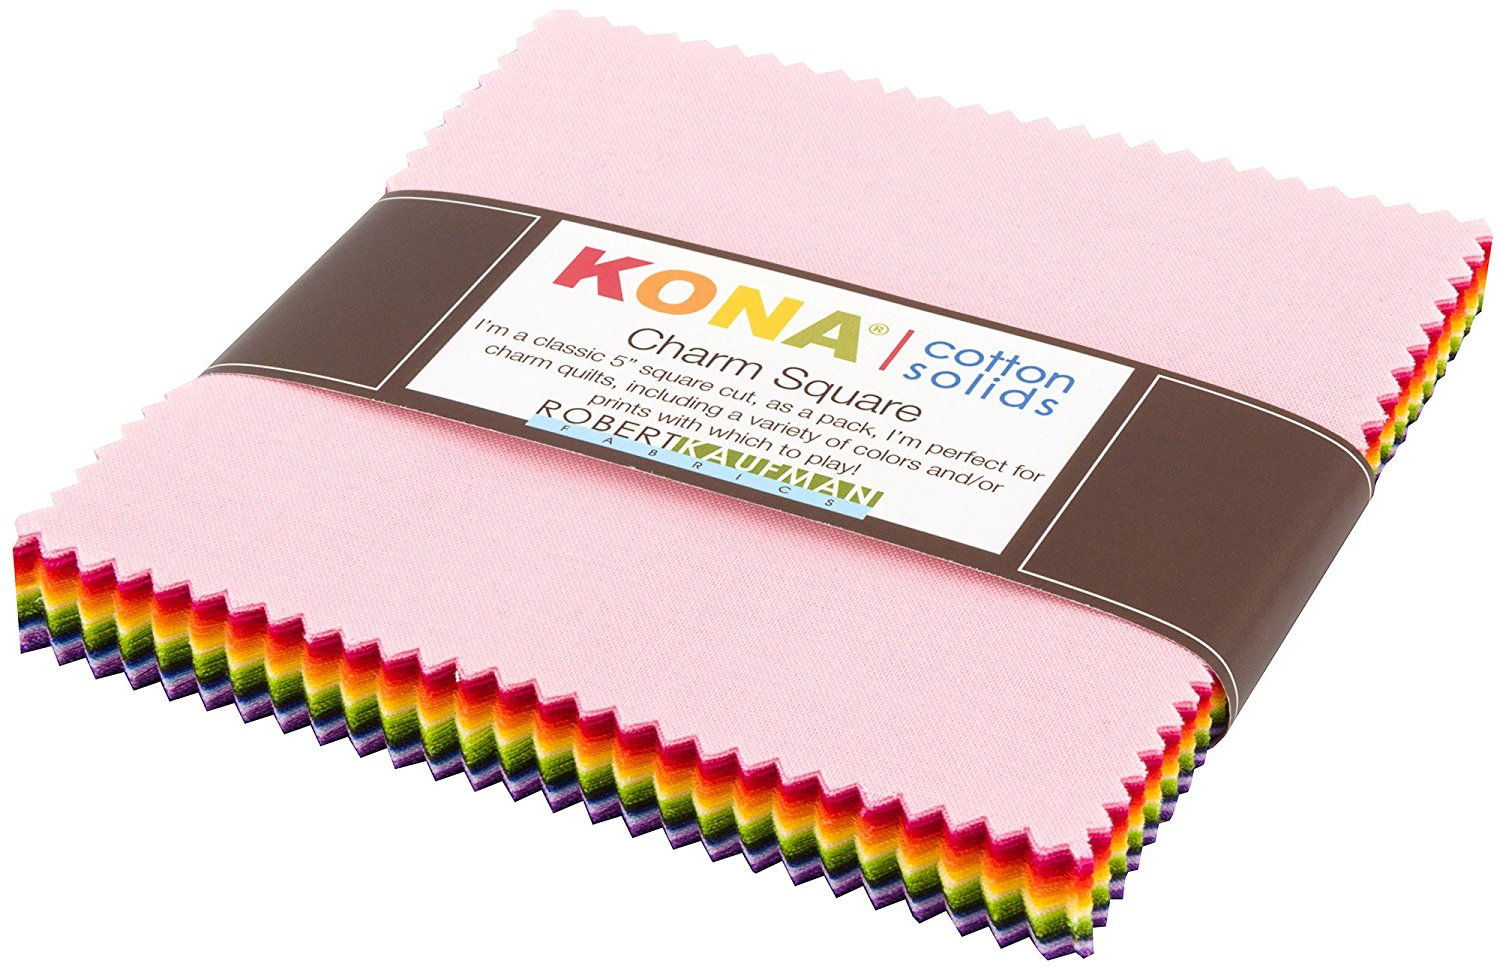 Kona Cotton Solids Charm Pack - 5 inch Squares - Annie Smith Palette